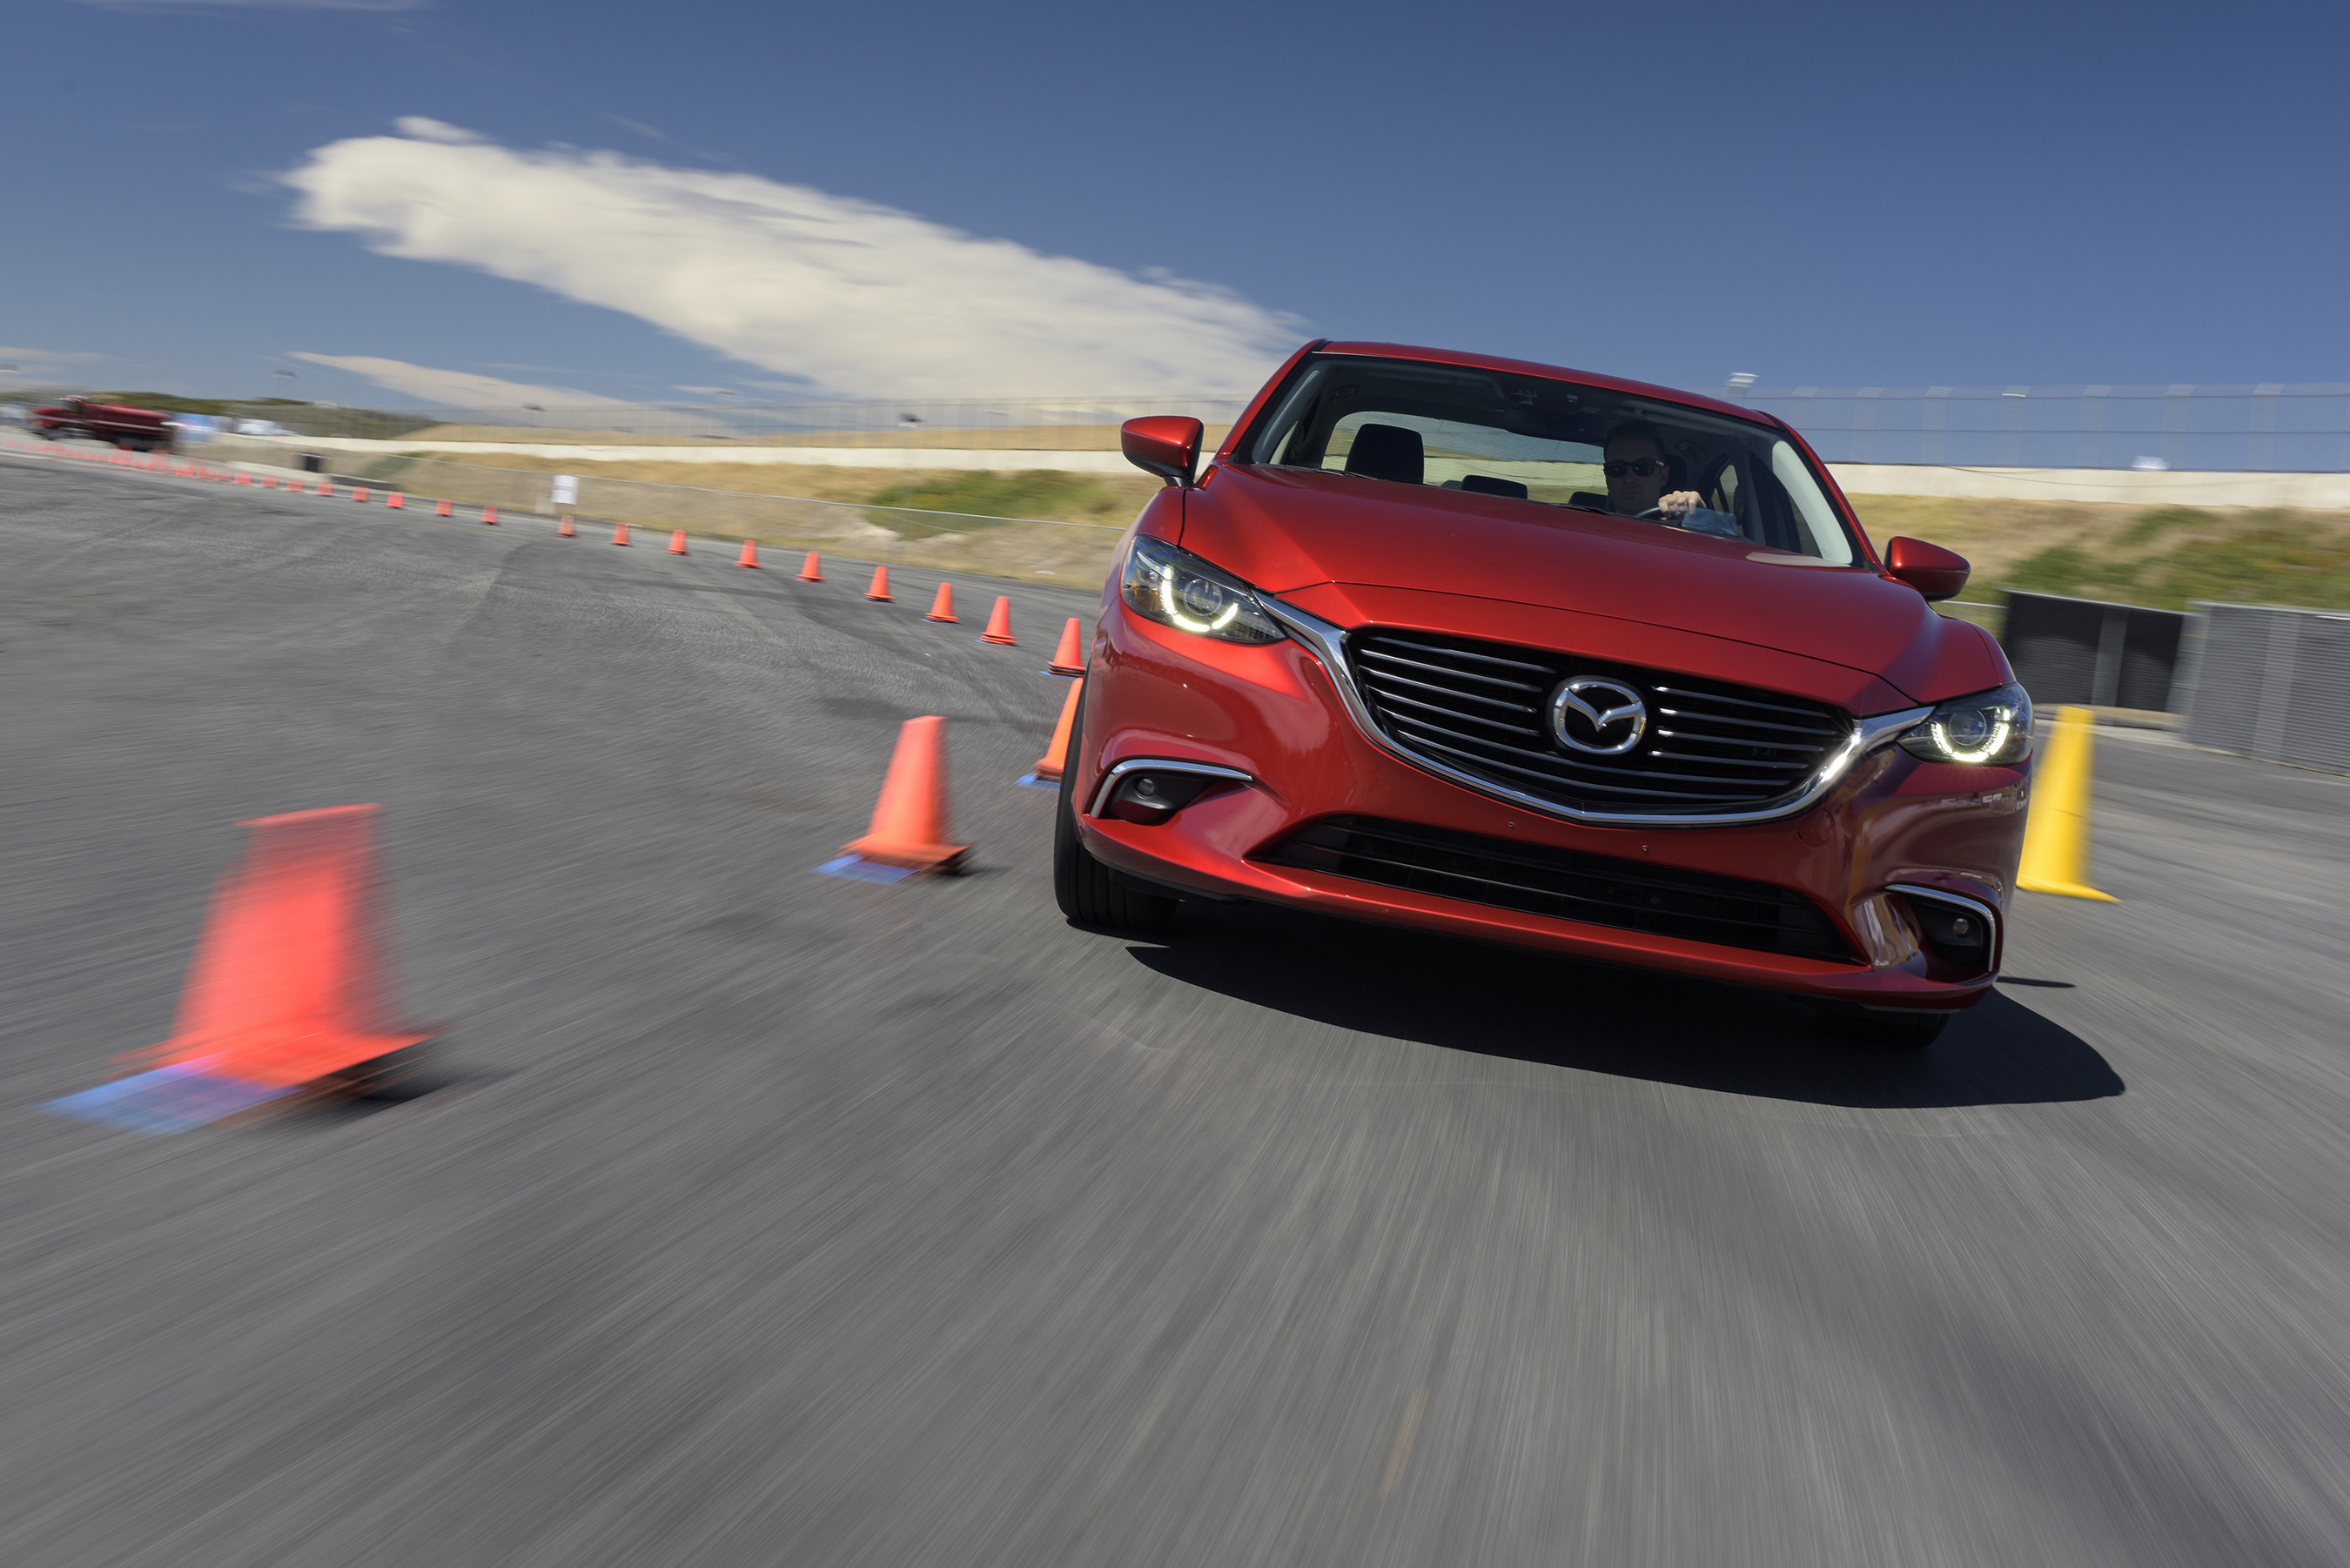 Mazda6 prototype equipped with G-Vectoring Control rounds cones at recent media event in Monterey, California.